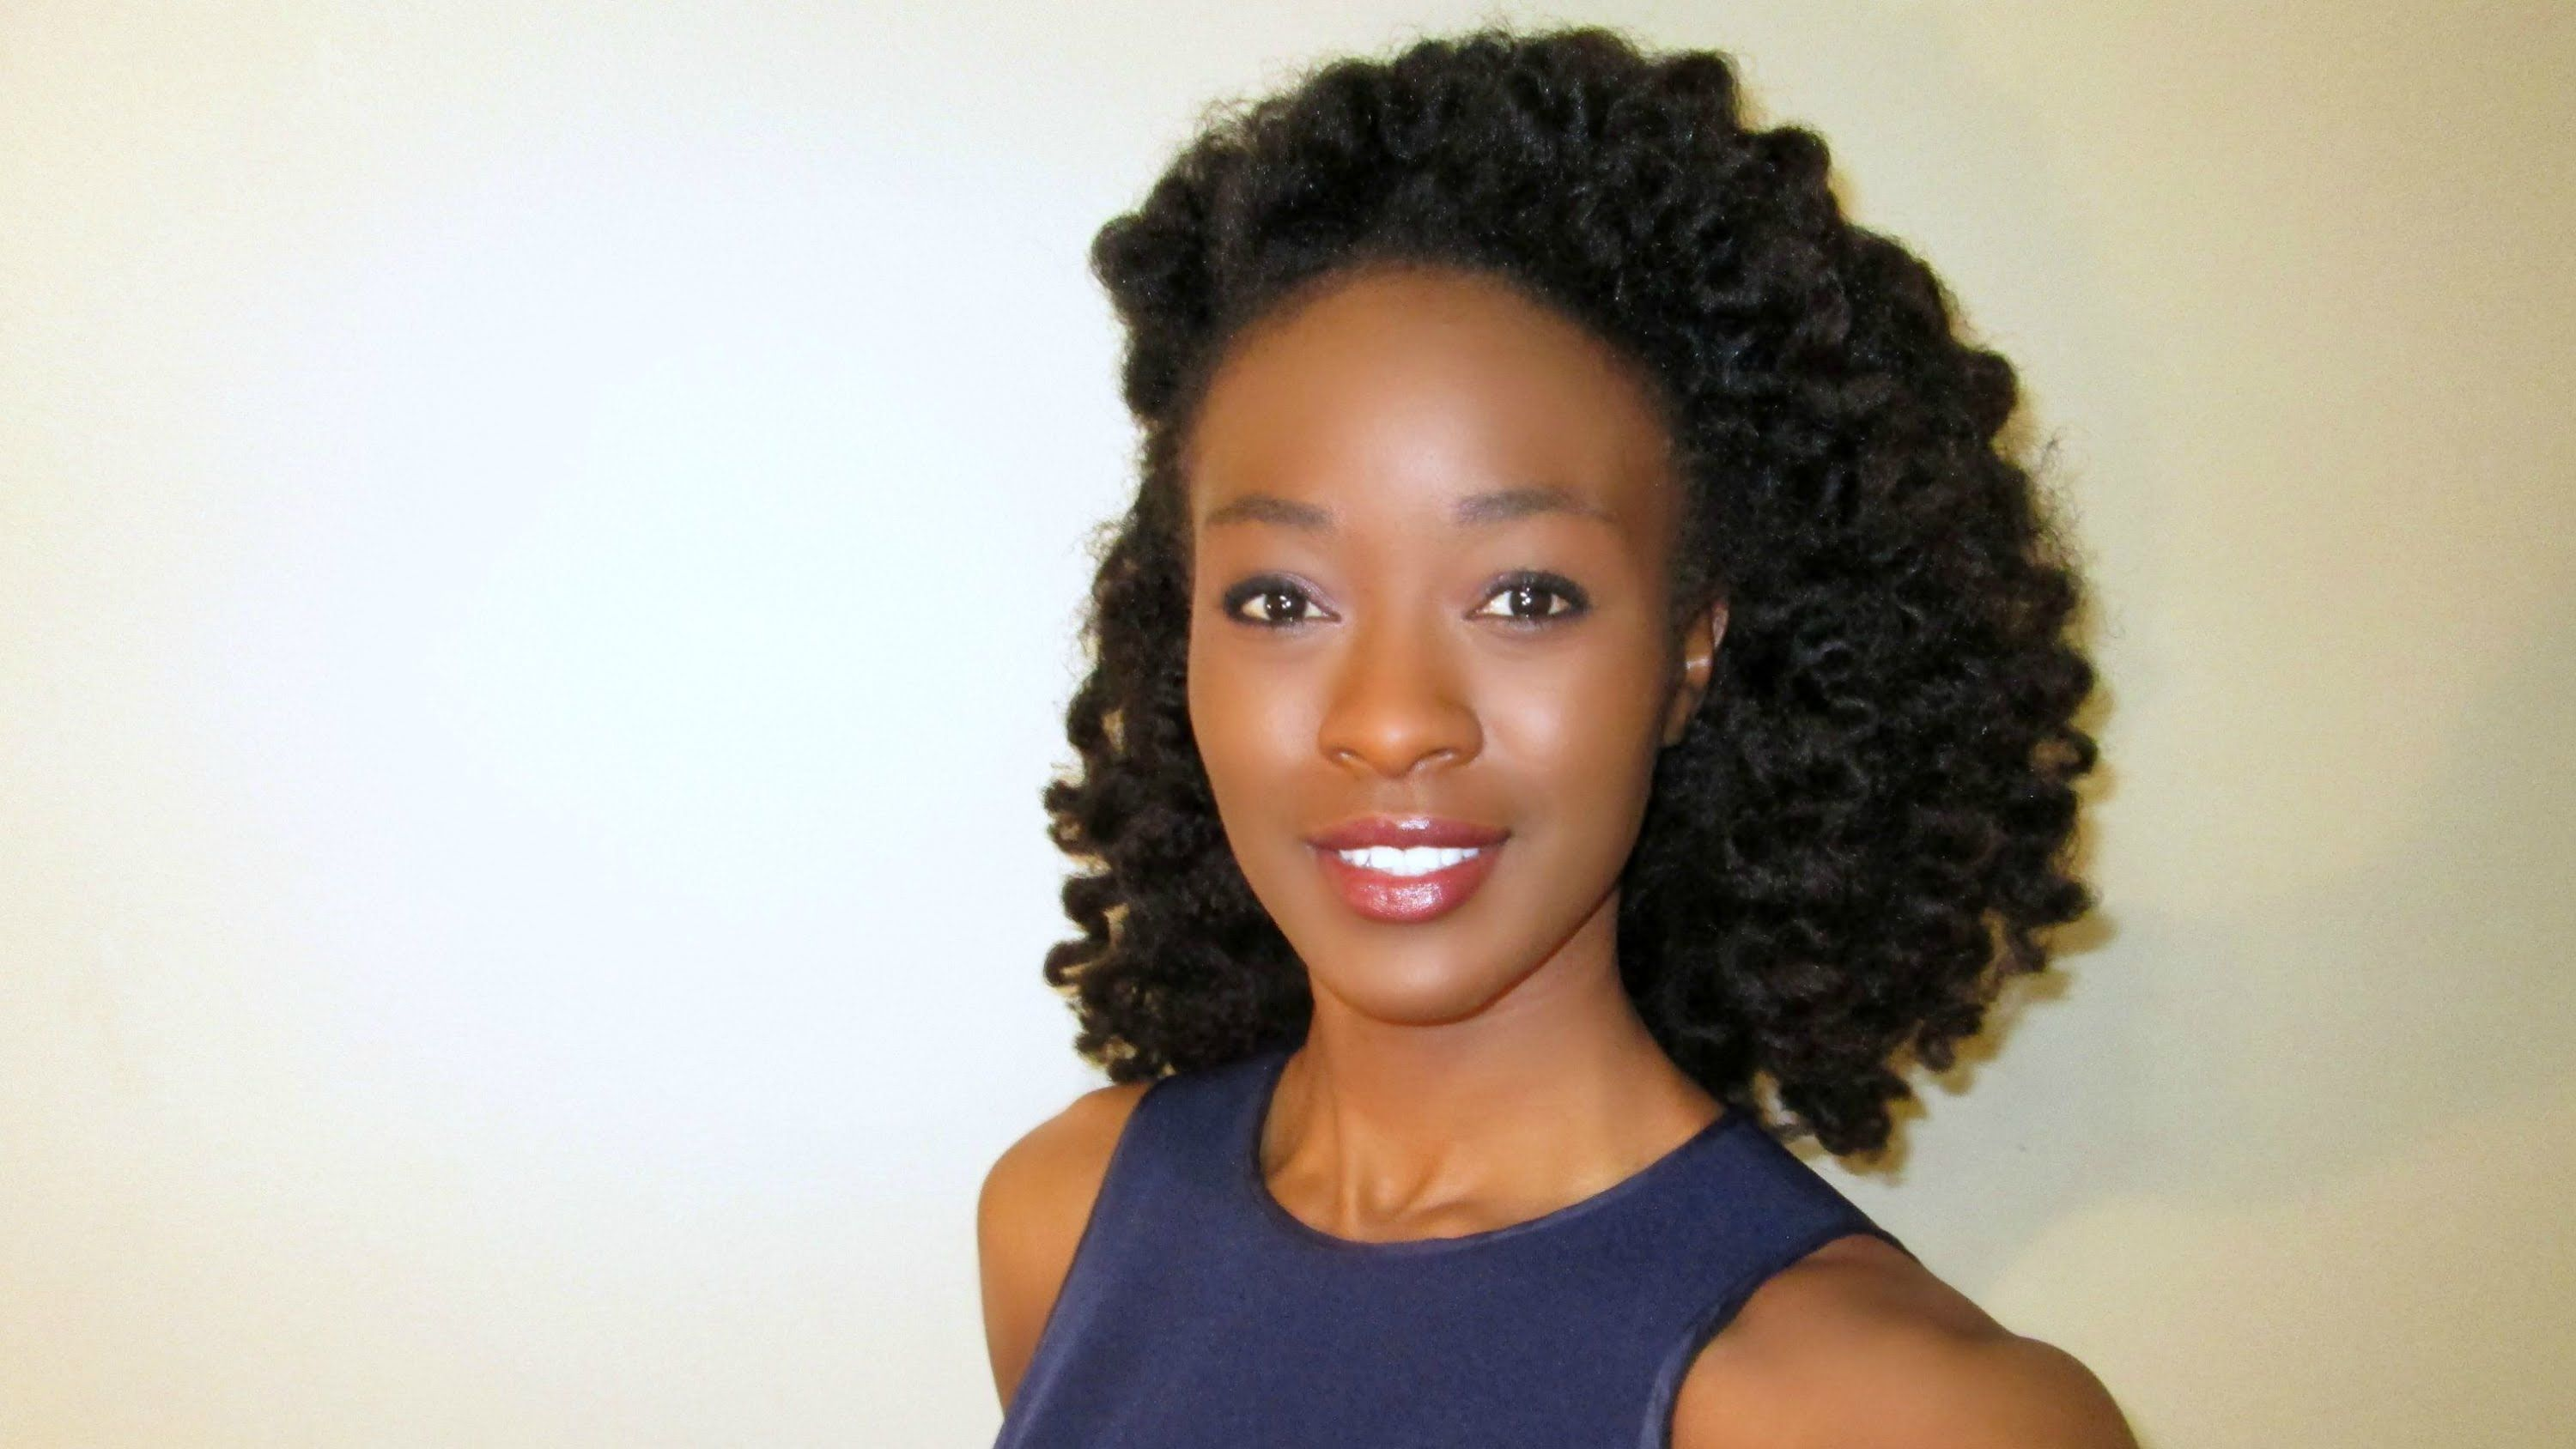 Best Kinky Human Hair For 4c Naturals Hergivenhair Review Wig